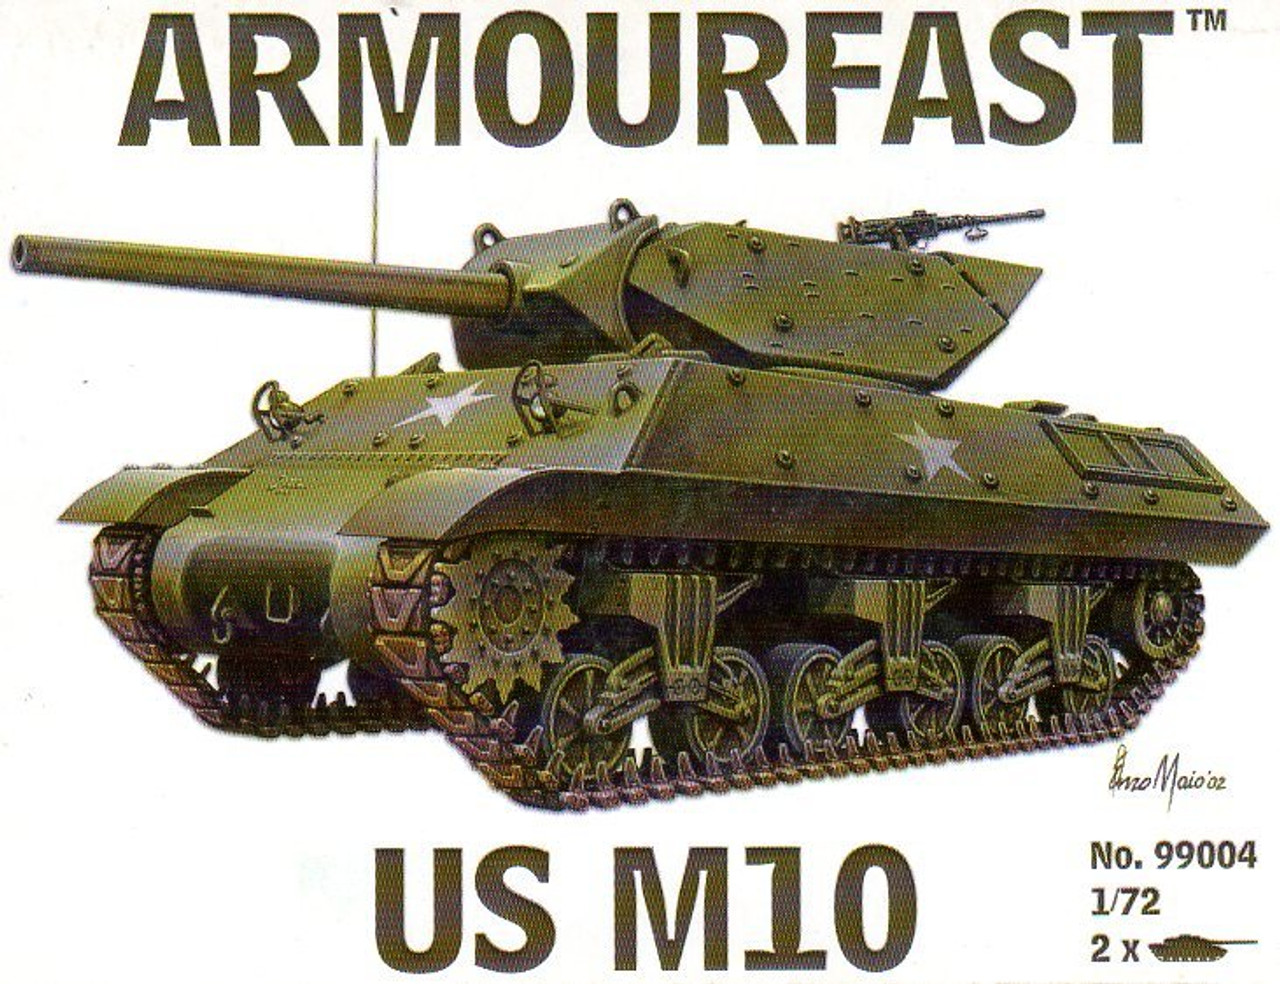 Armourfast 99004 US M10 1:72 Scale Model Kit (AF99004)